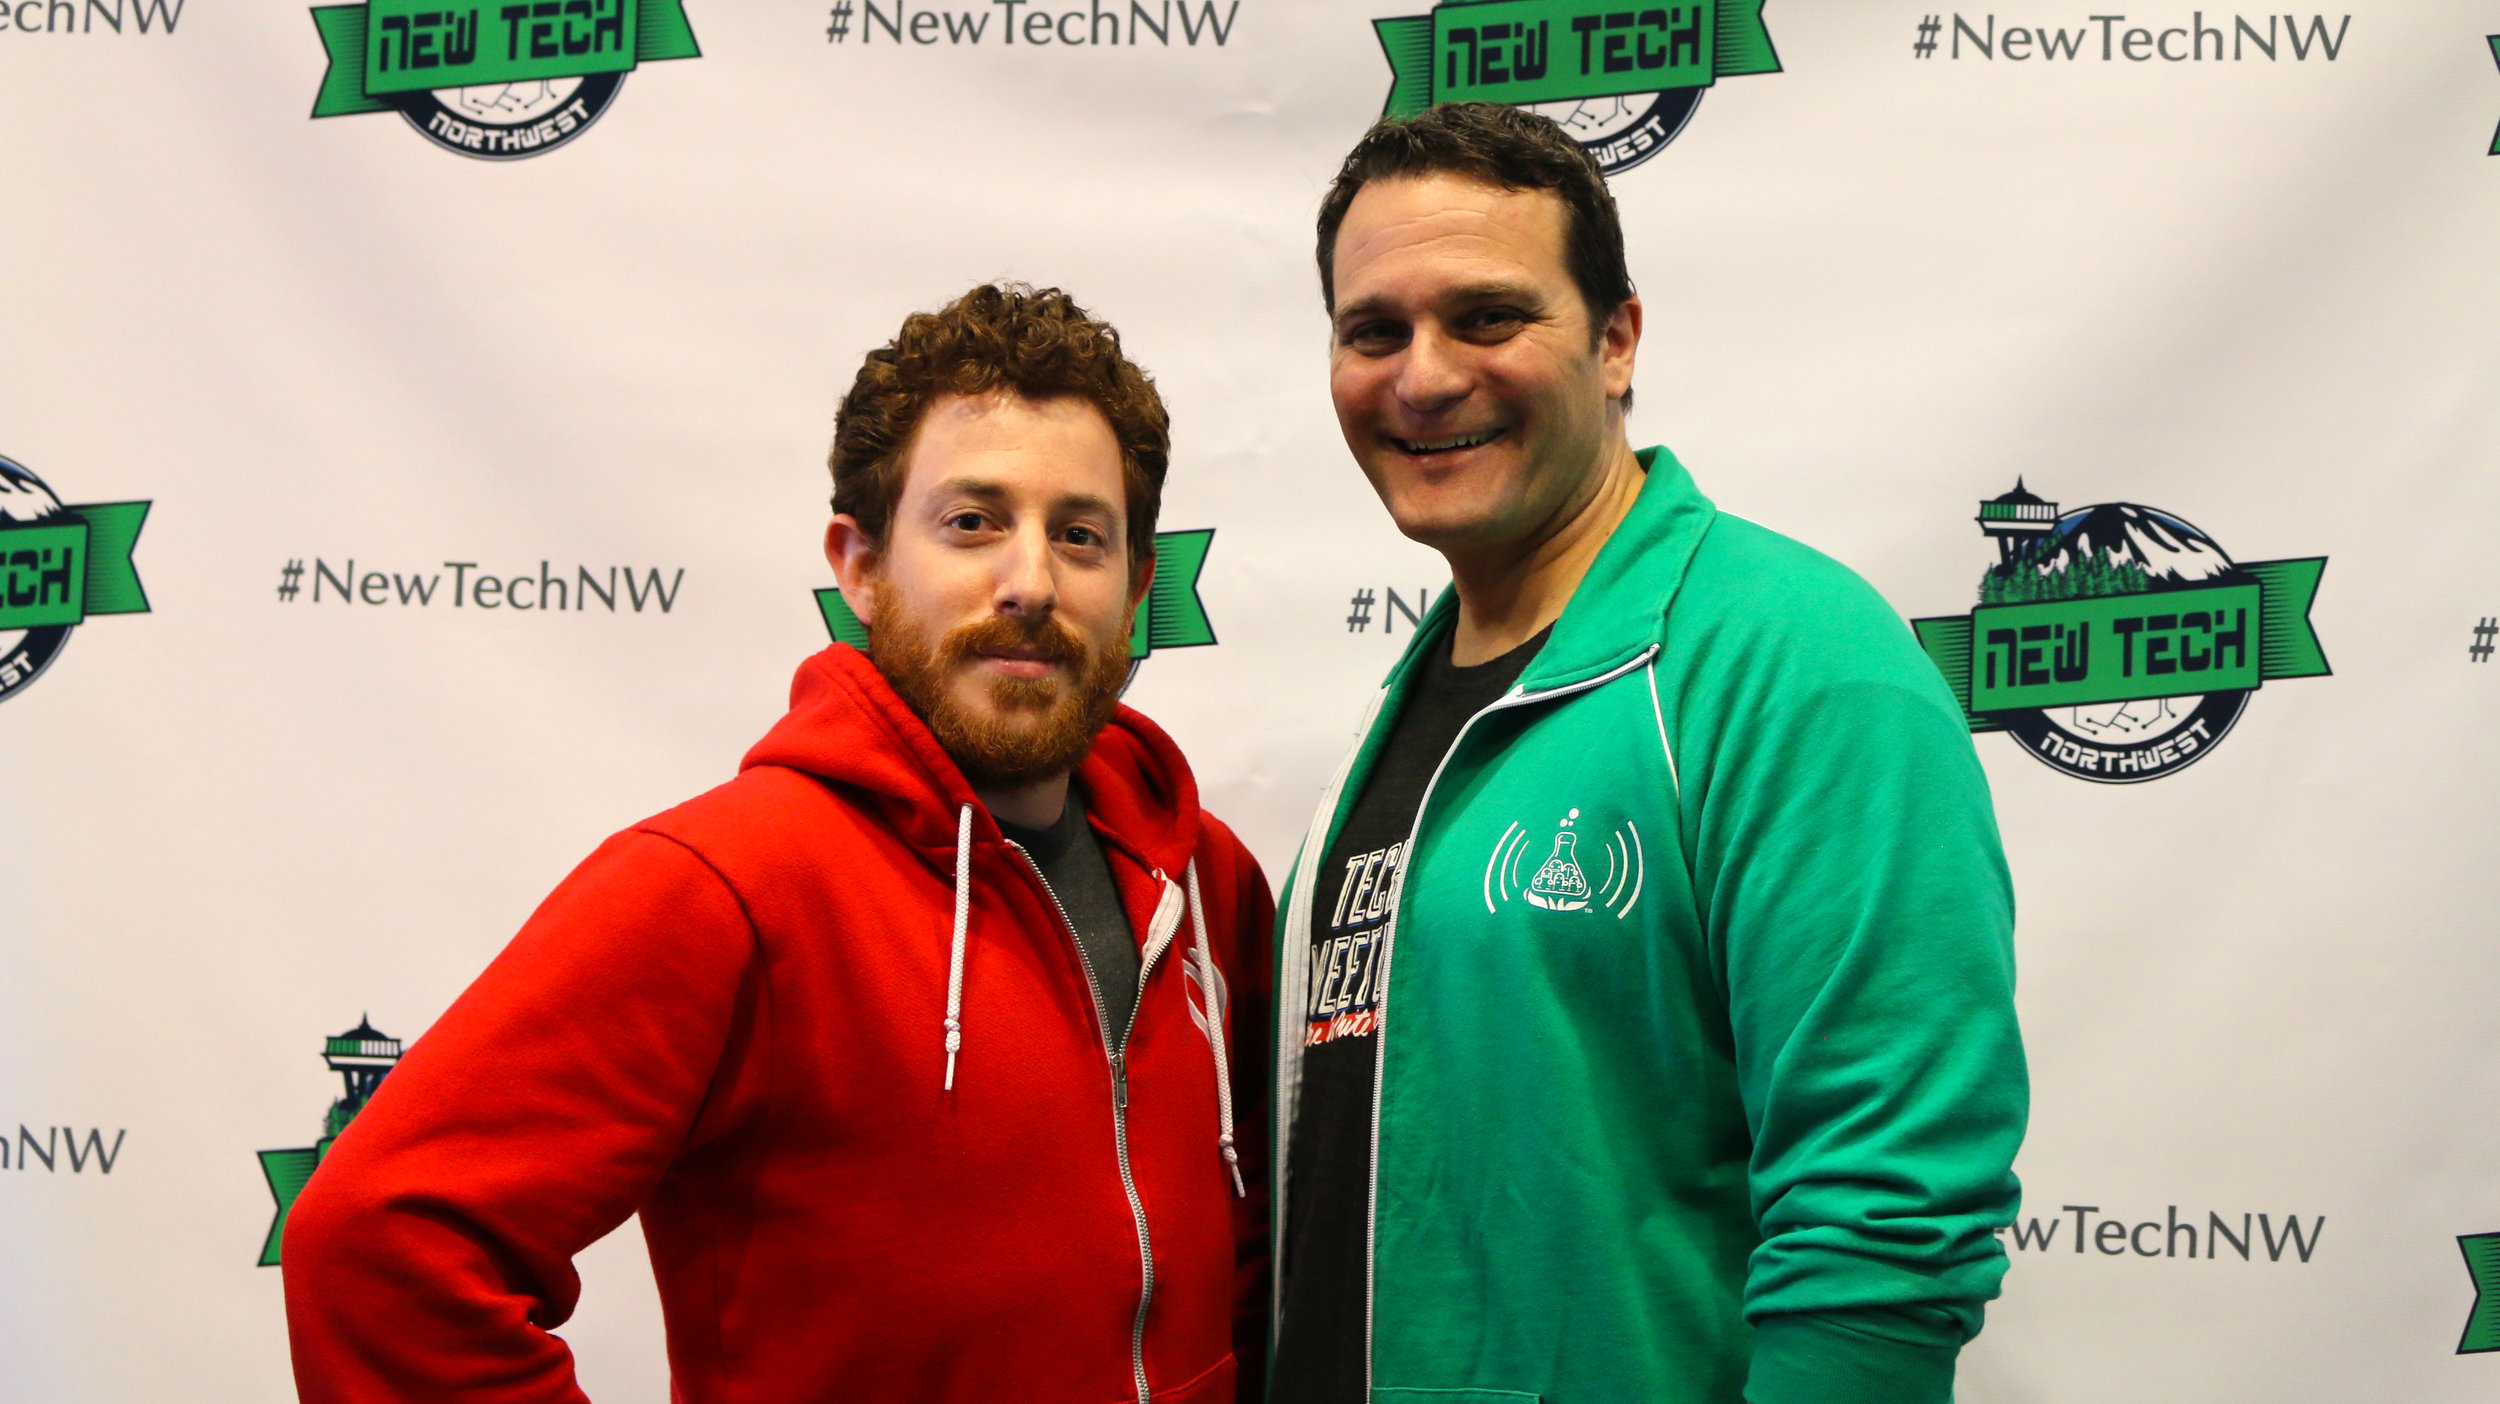 Red Russak (L) and Brett Greene (R)co-founded New Tech Seattle and are startup ecosystem builders in the greater Seattle region.